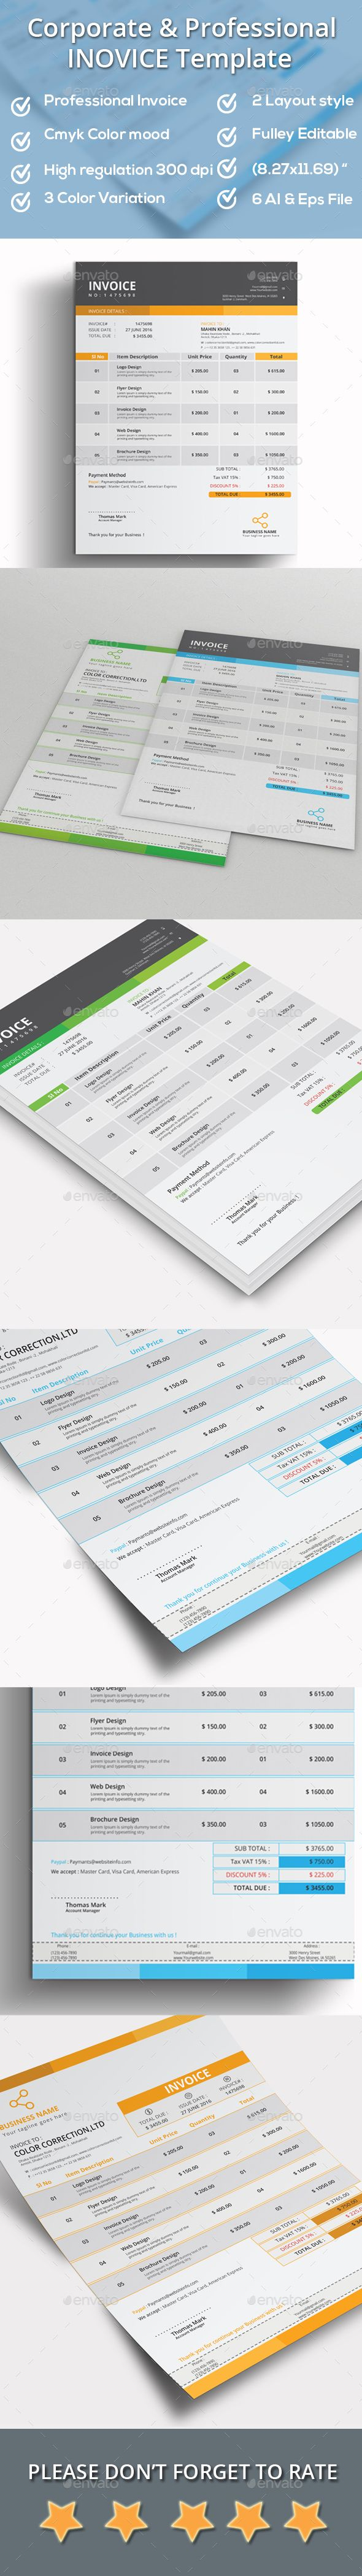 professional invoice templates templates and invoice template professional invoice templates only